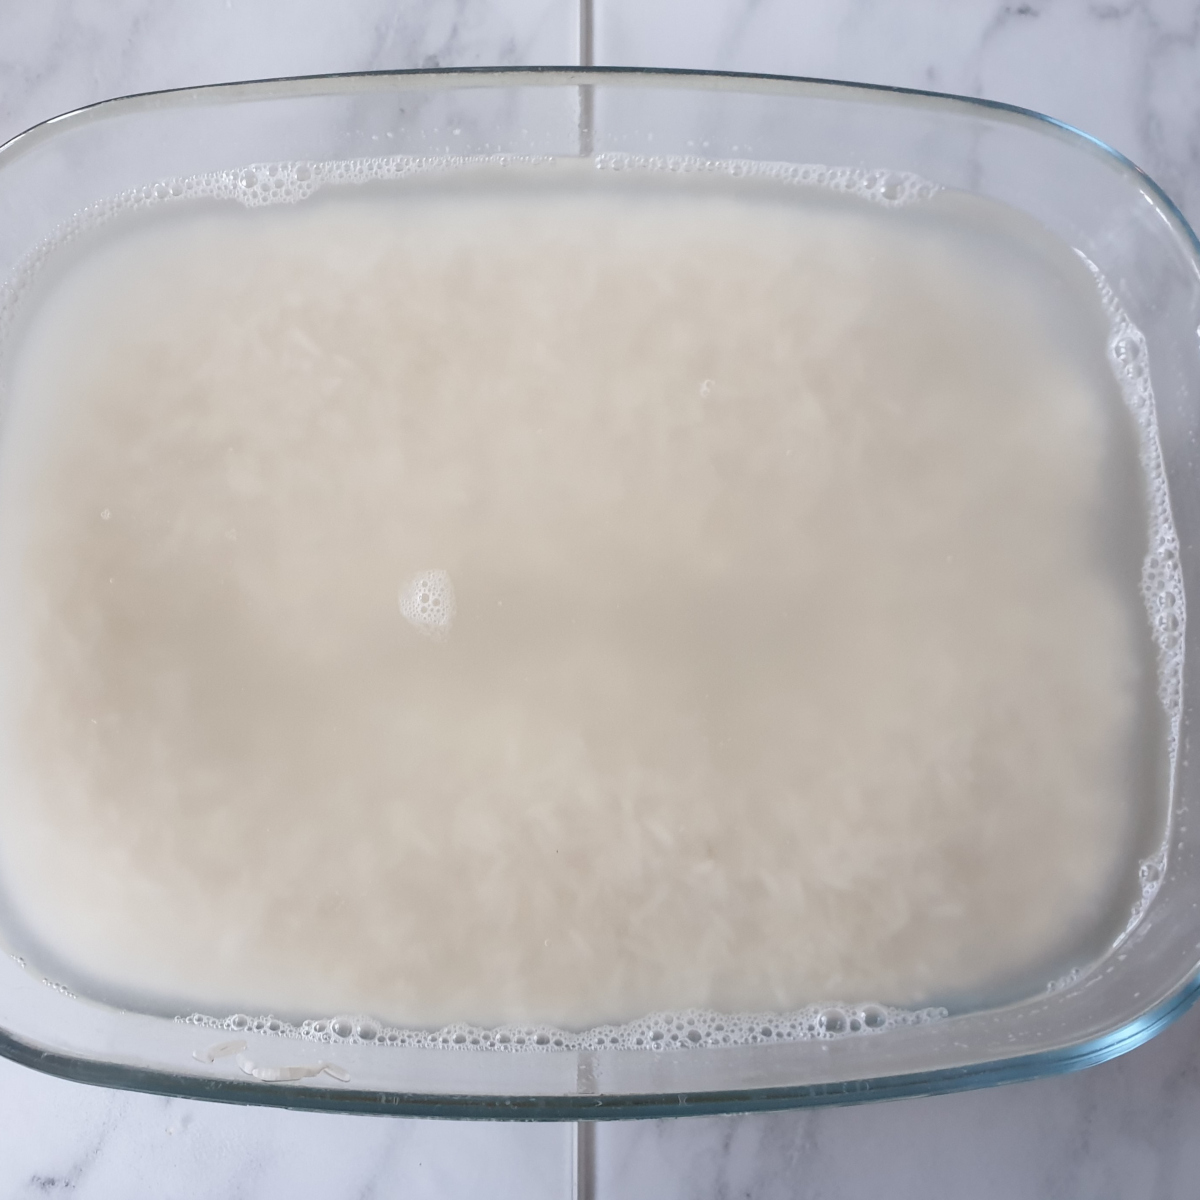 A baking dish containing rice covered in water.